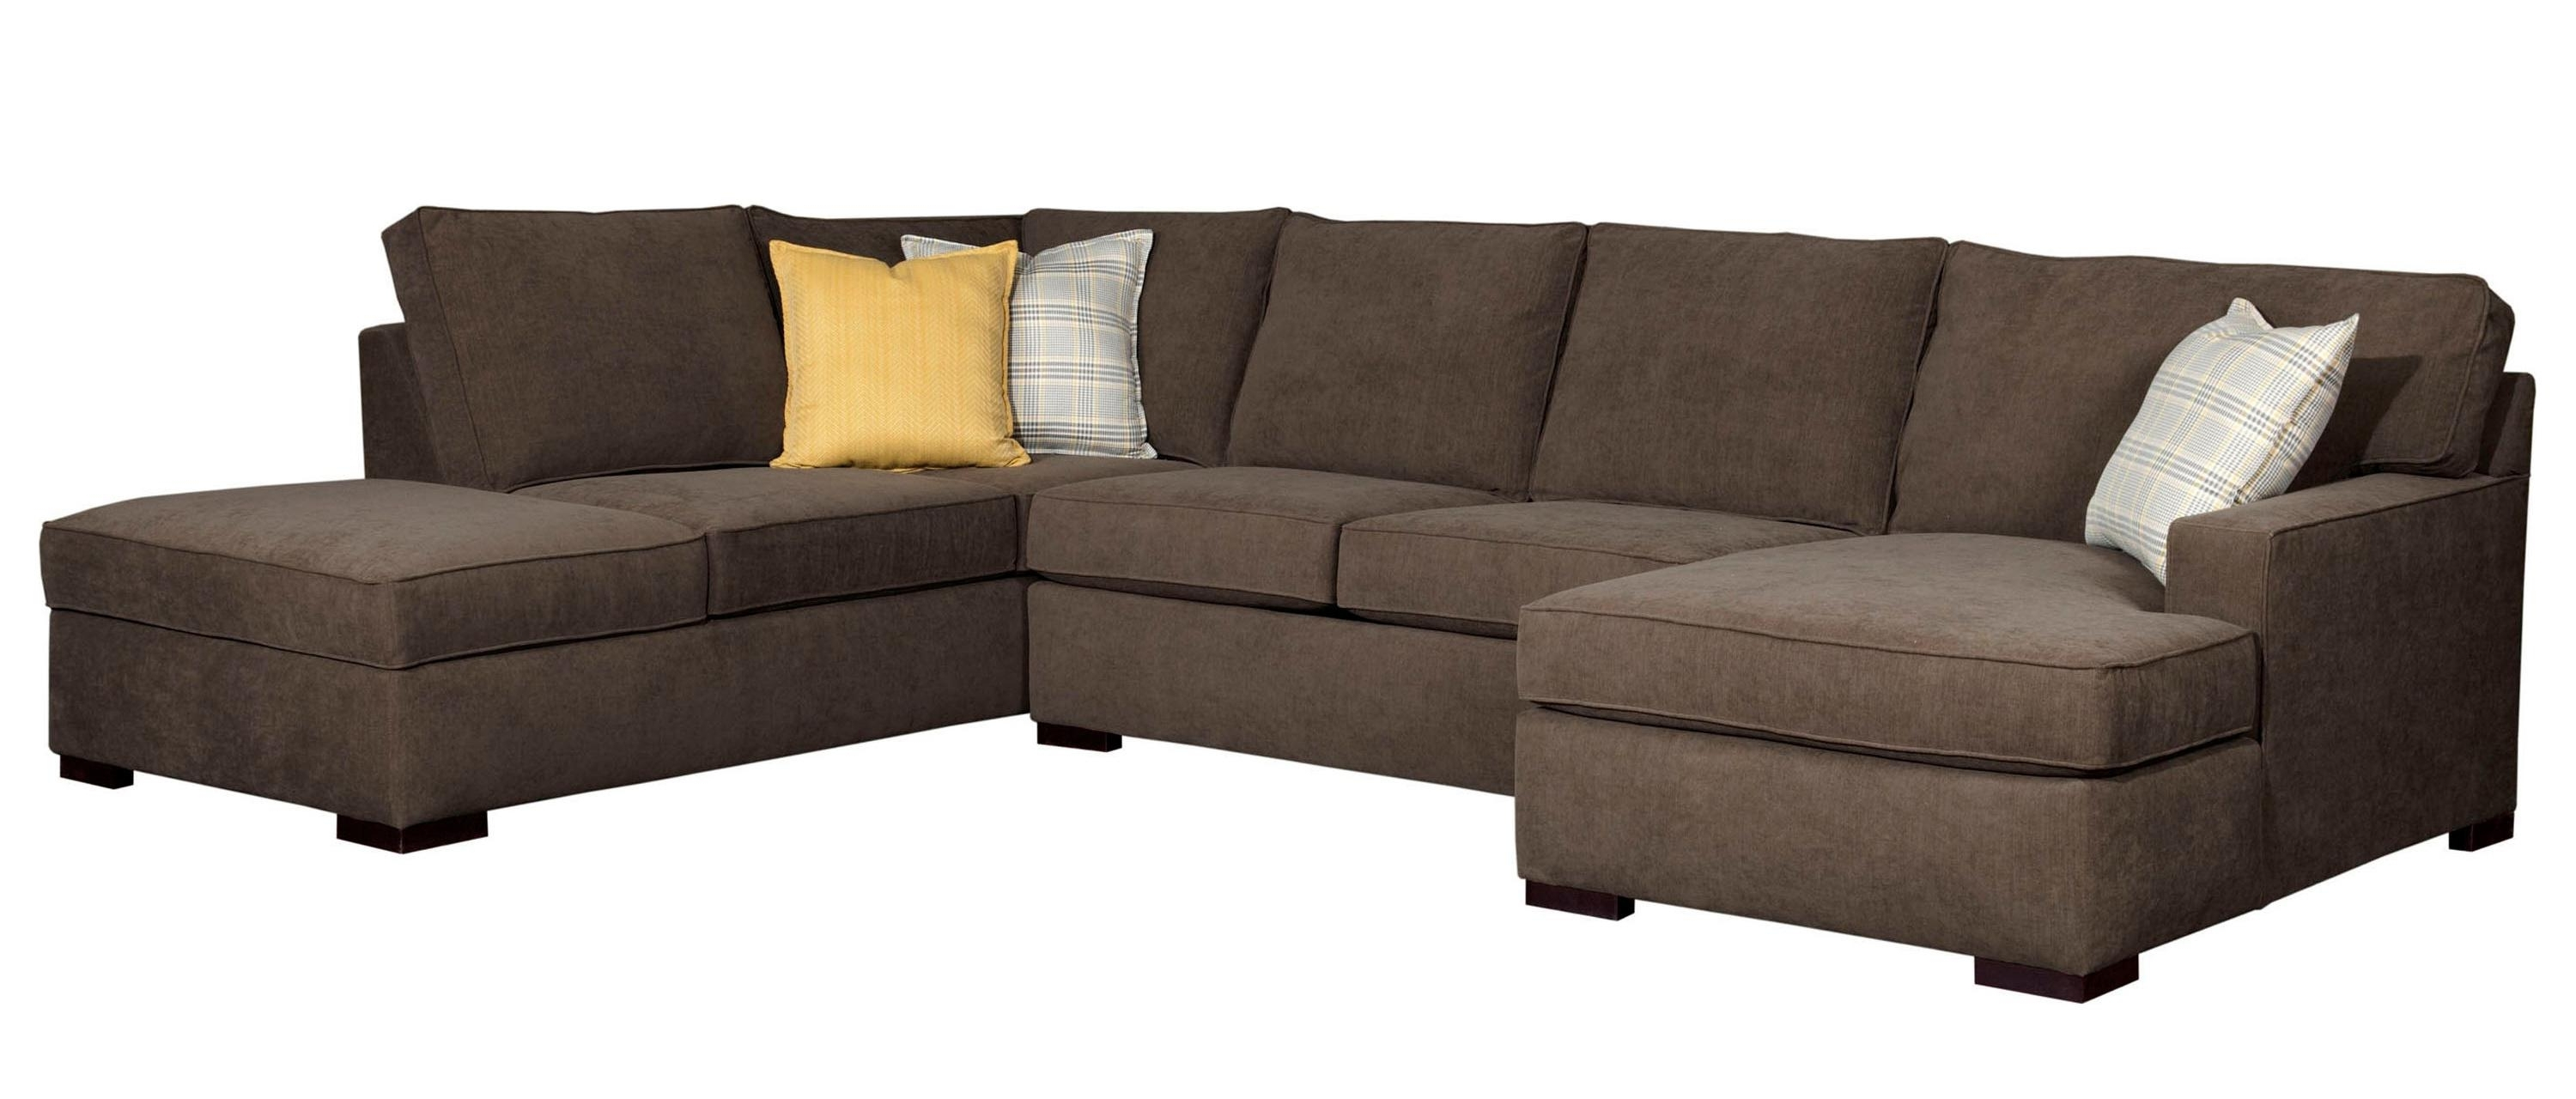 Fashionable Sectional Sofas At Calgary With Regard To Great Broyhill Sectional Sofas 75 With Additional Sectional Sofas (View 7 of 20)